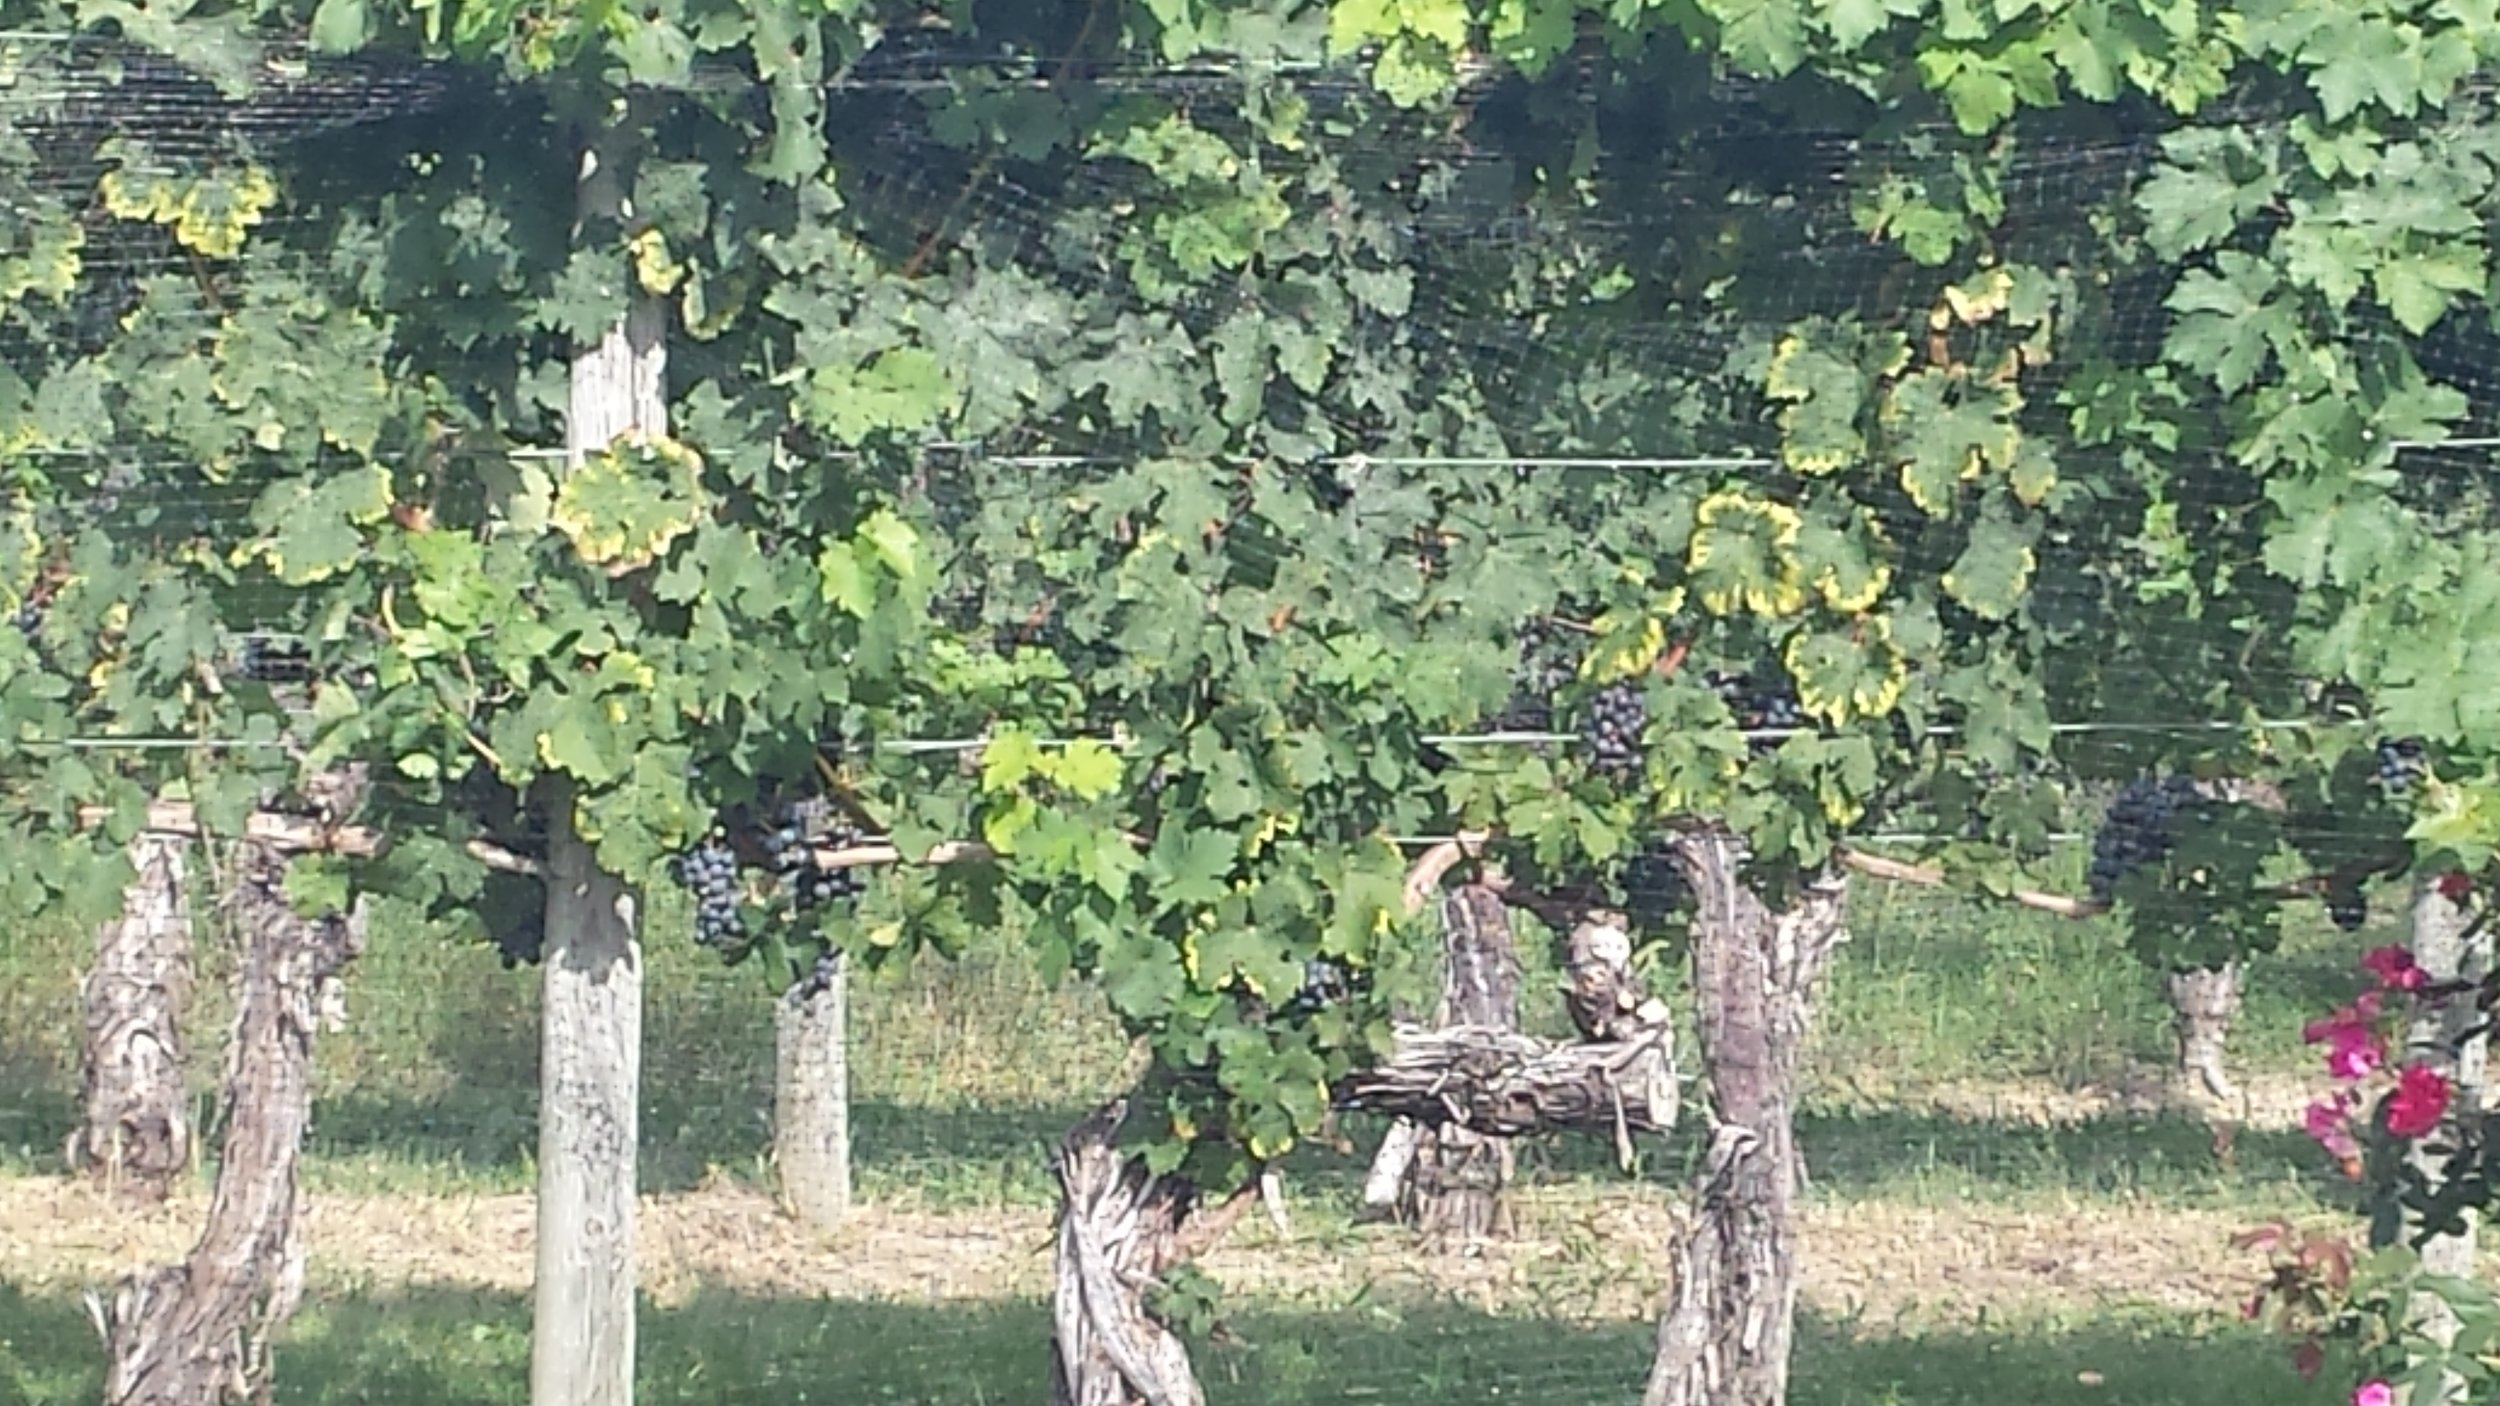 The vines were heavy with fruit... more good wine to come!